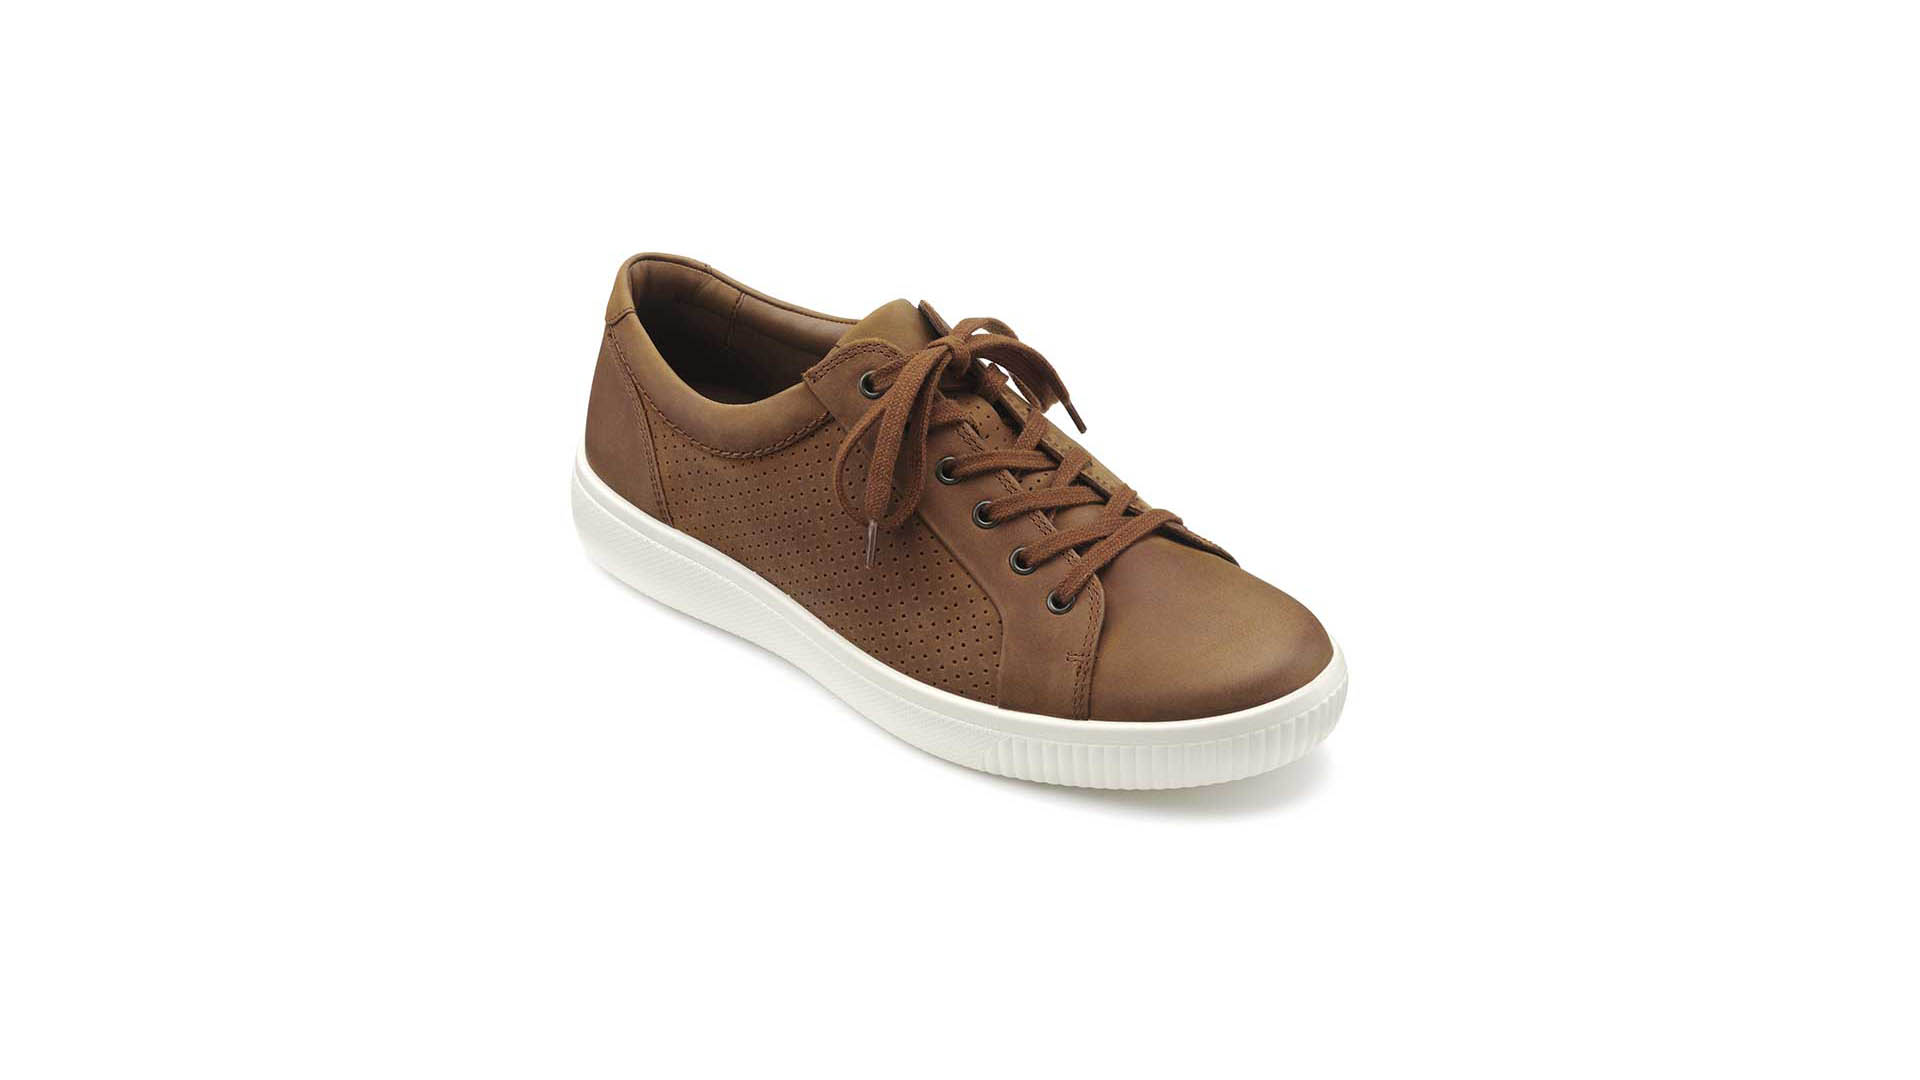 Tobago Shoes From Hotter Shoes is a great option for your new shoes